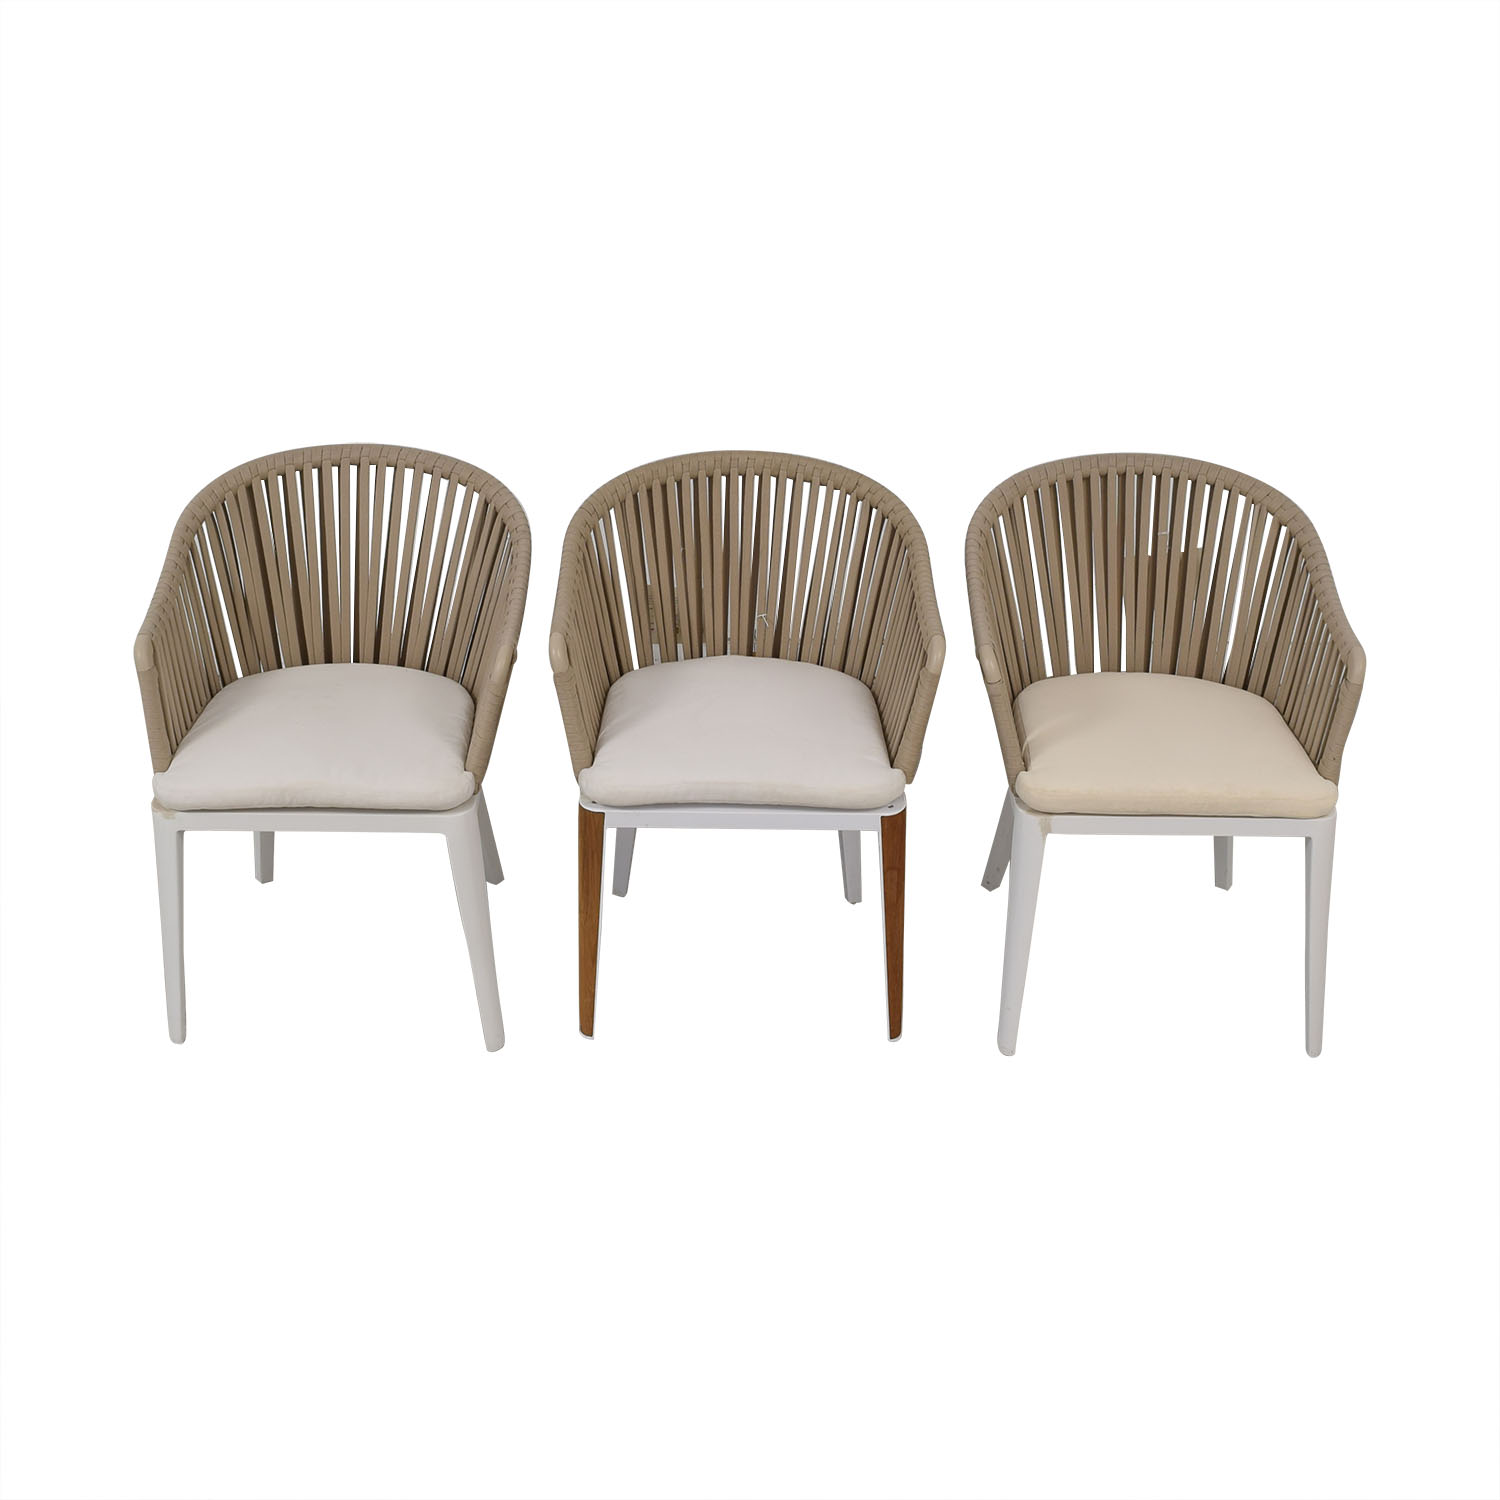 Control Brand Lounge Chairs / Chairs